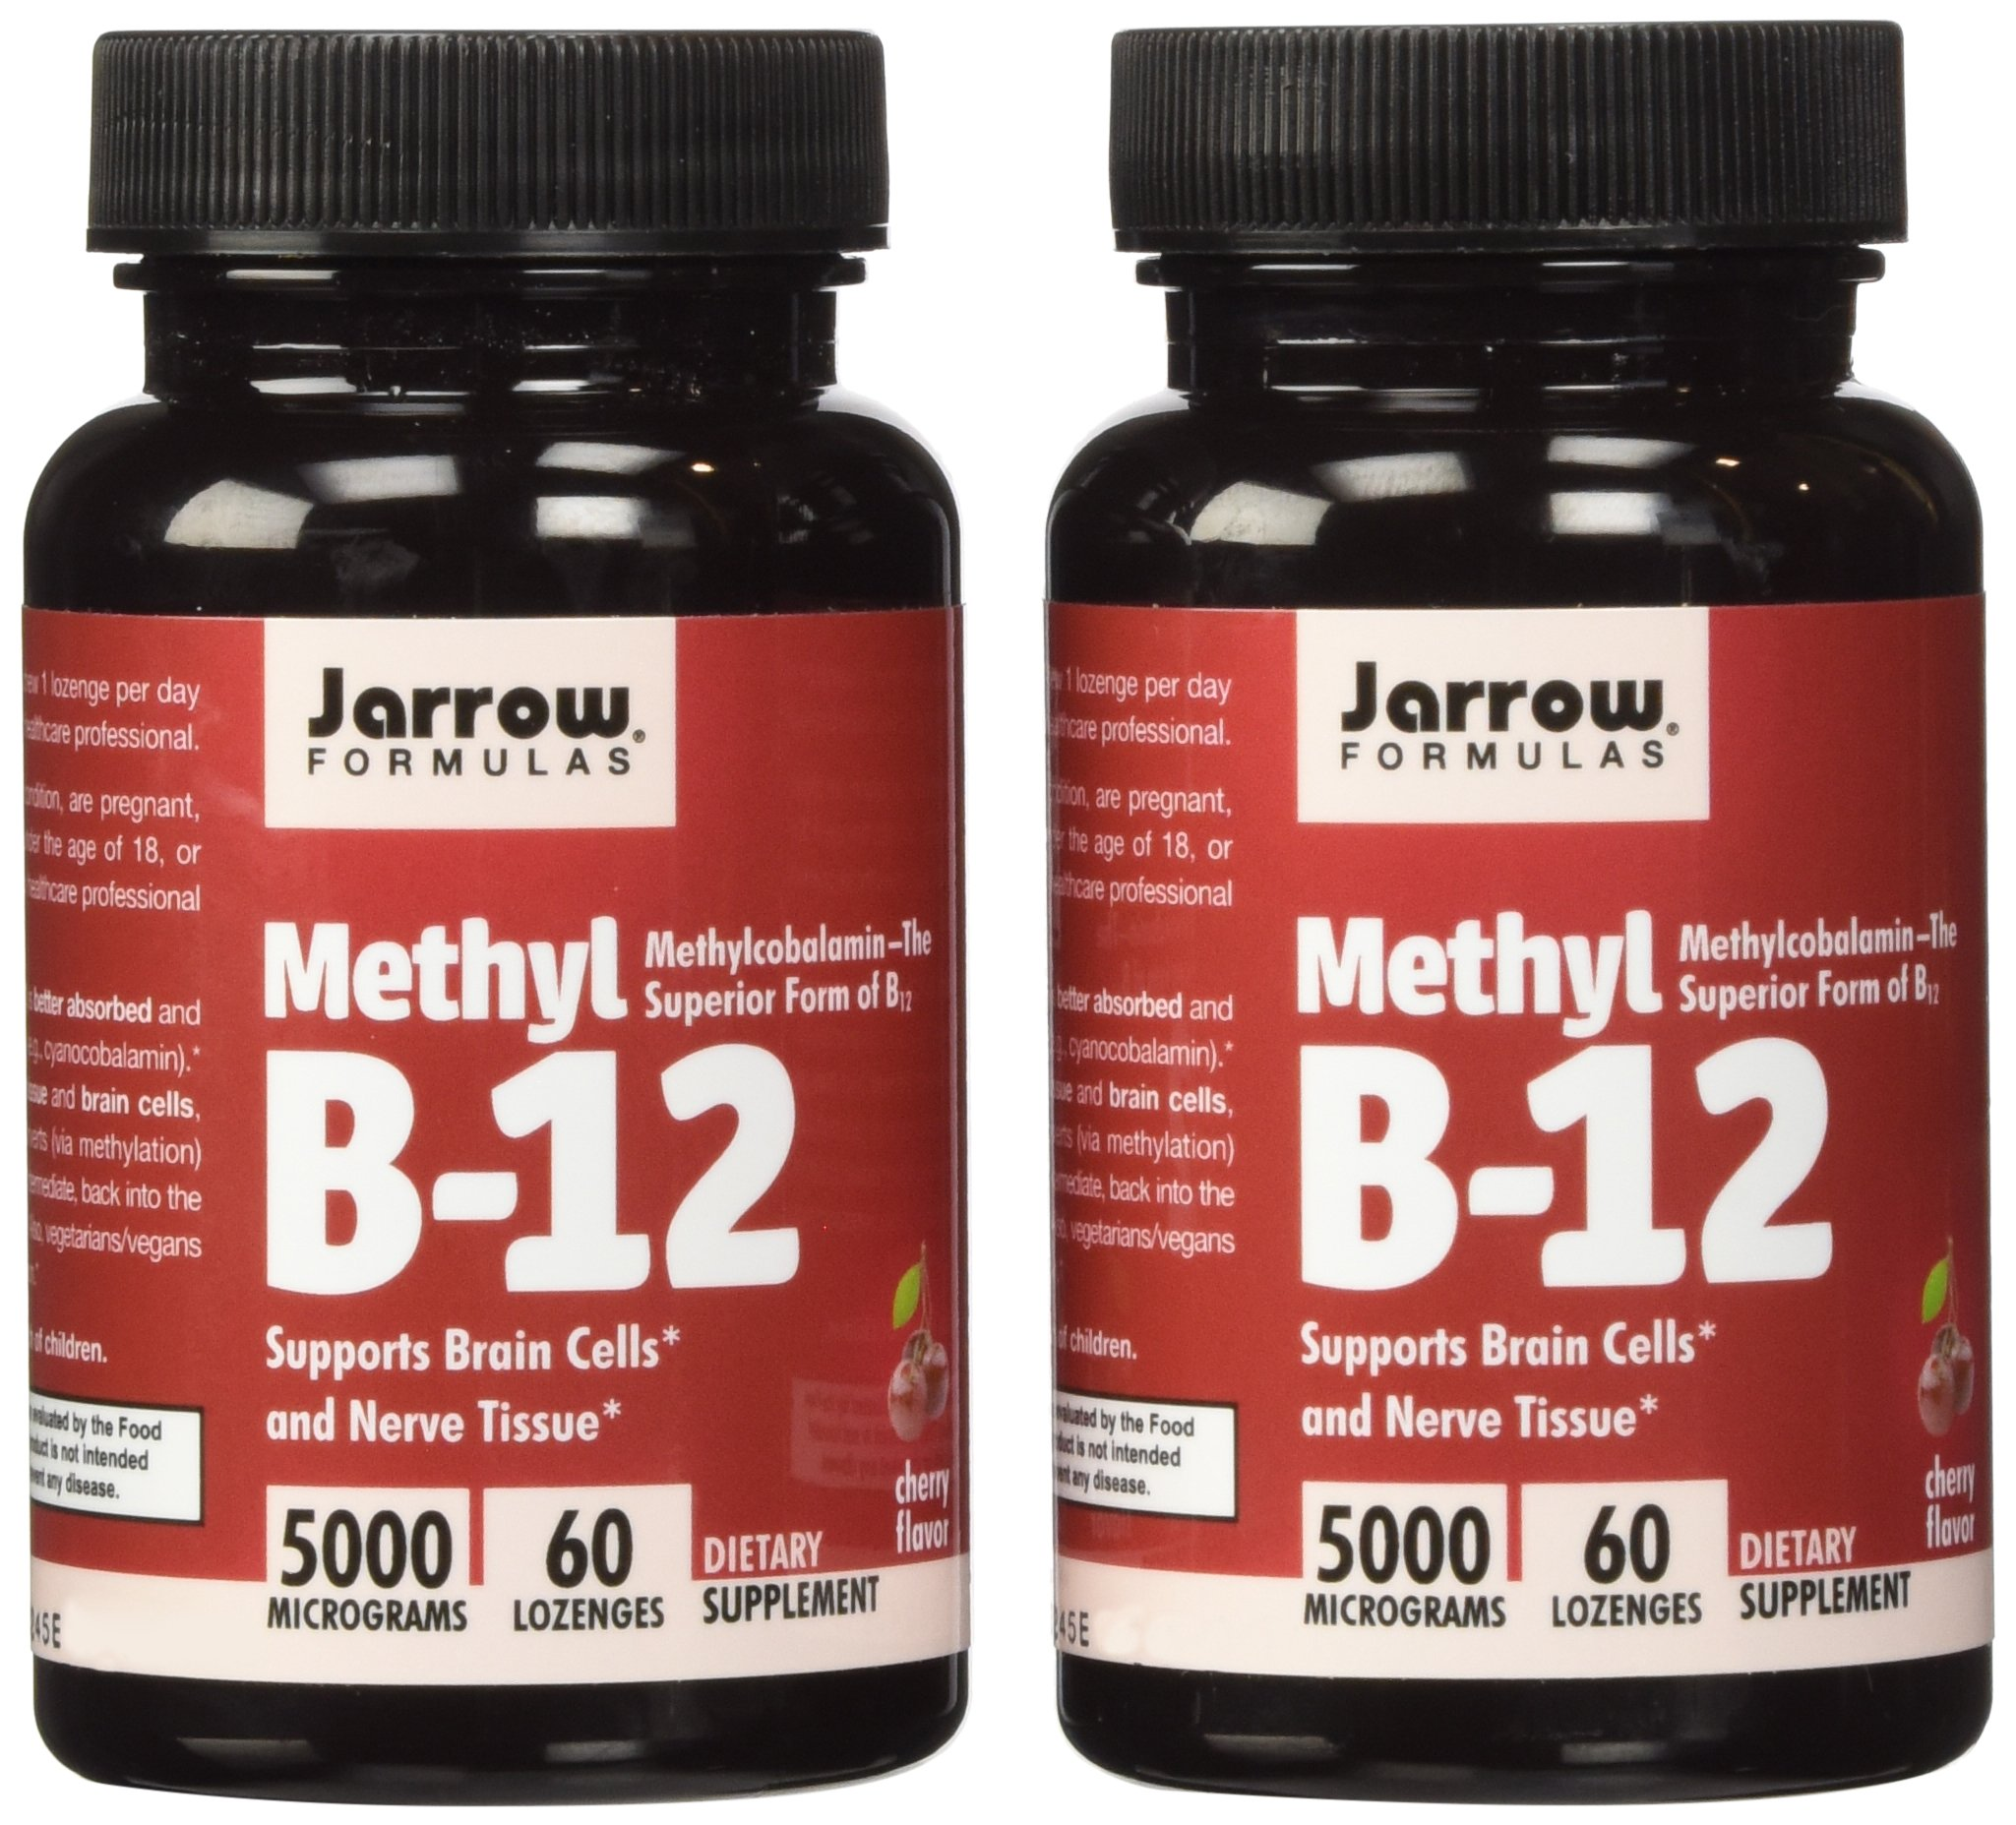 Jarrow Formulas Methyl B12, Methylcobalamin (2 X 60) by Jarrow Formulas